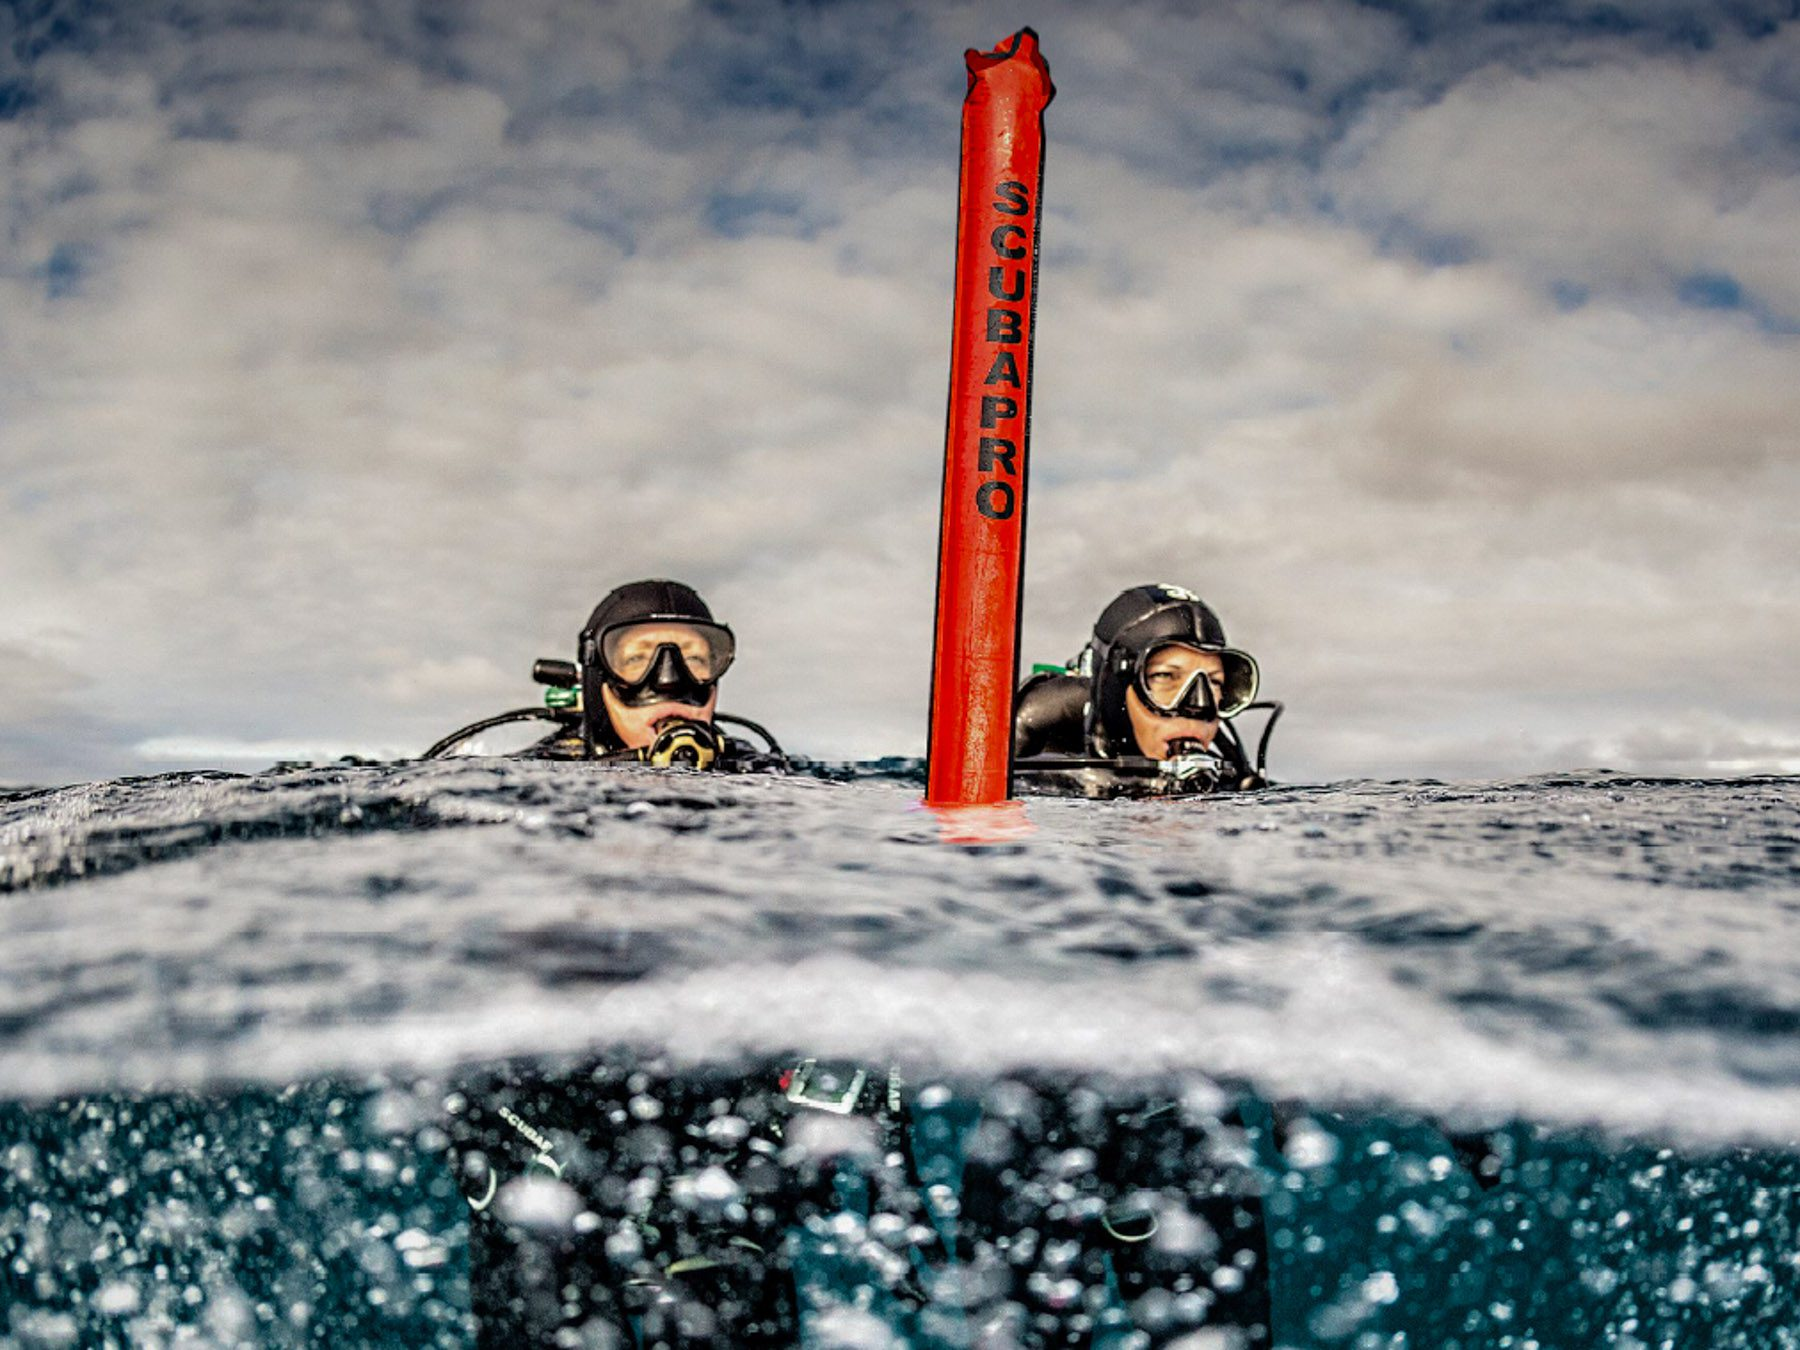 Diving Safely at Sea